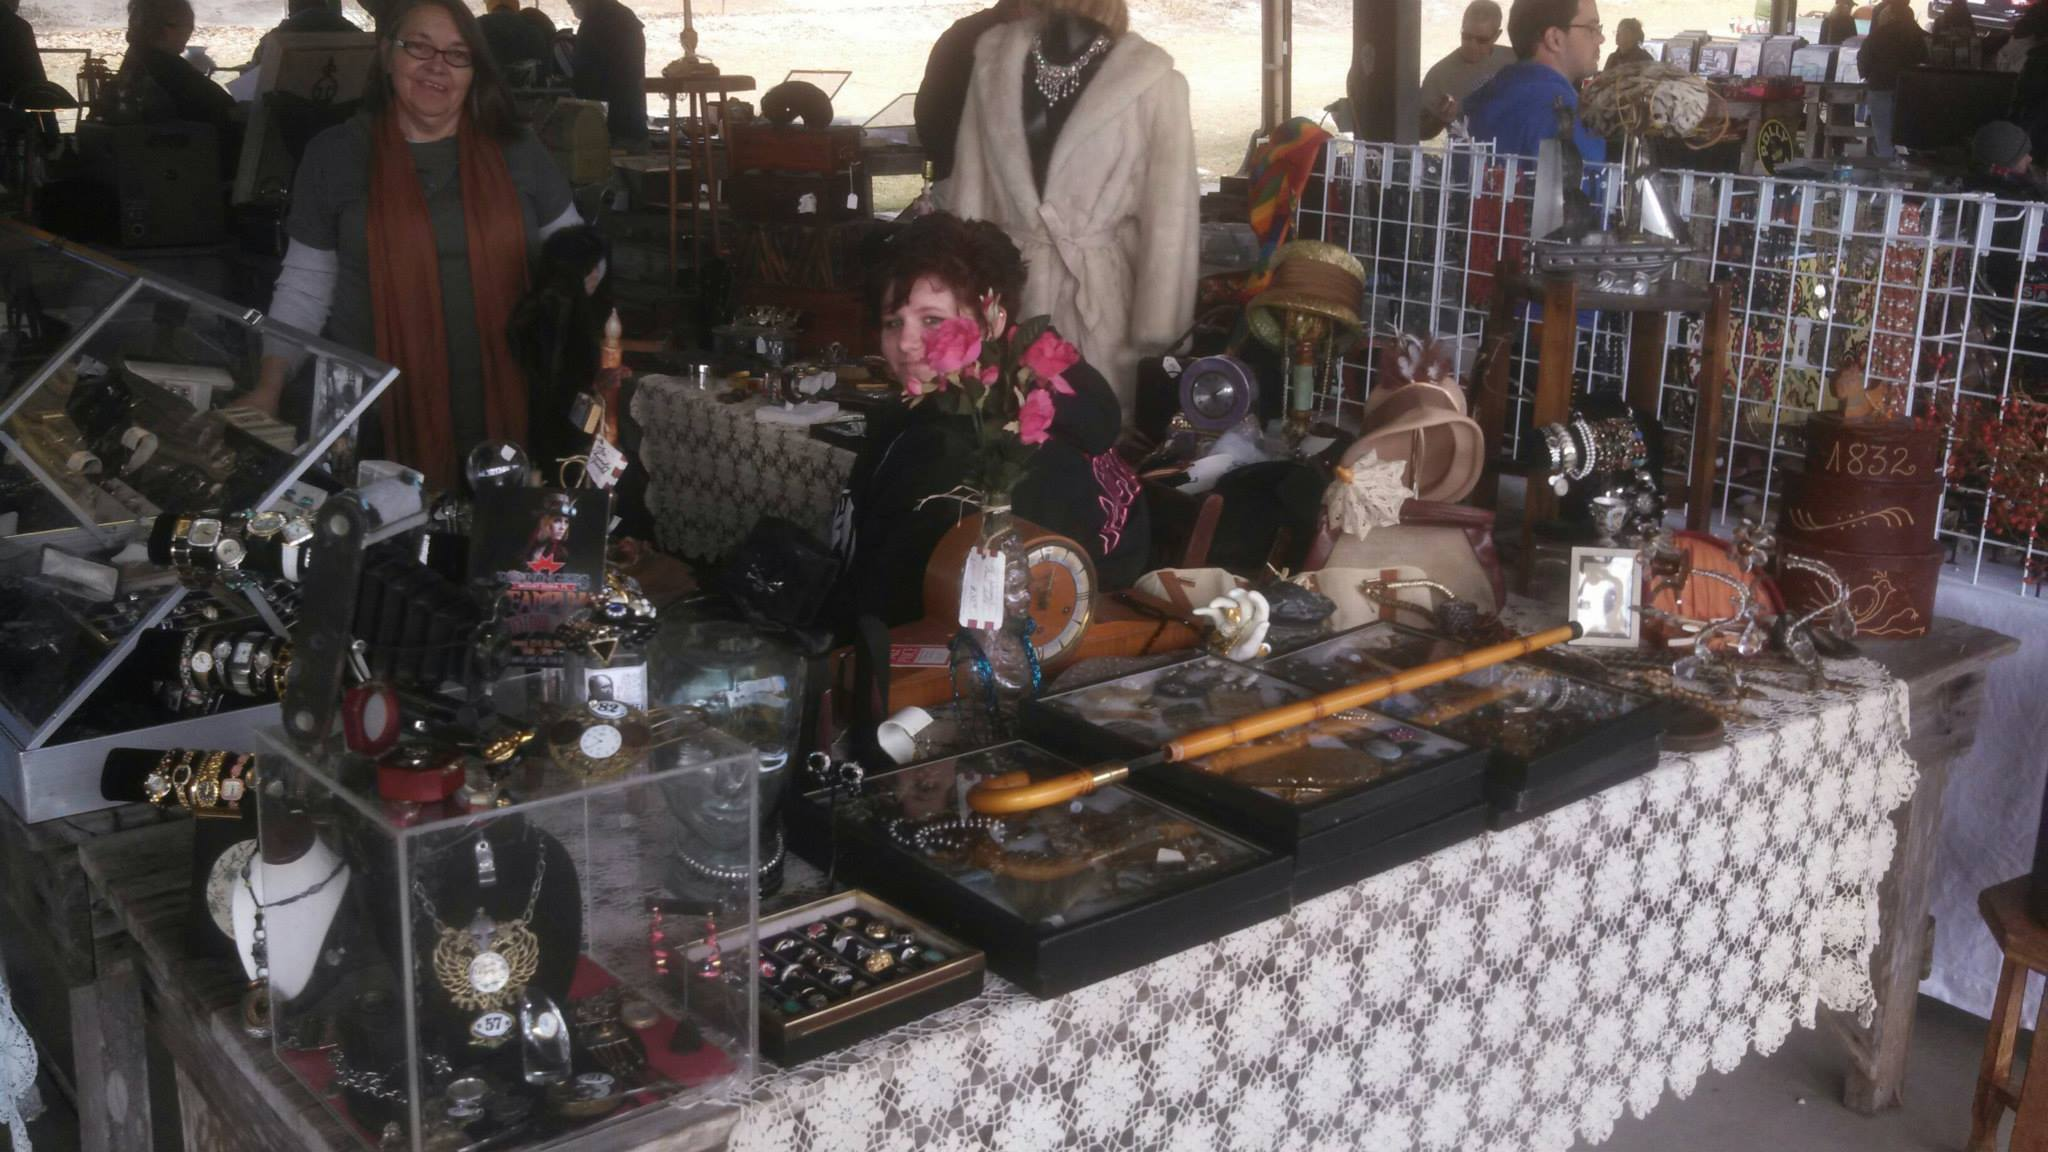 Steampunk Industrial Show: January 2014